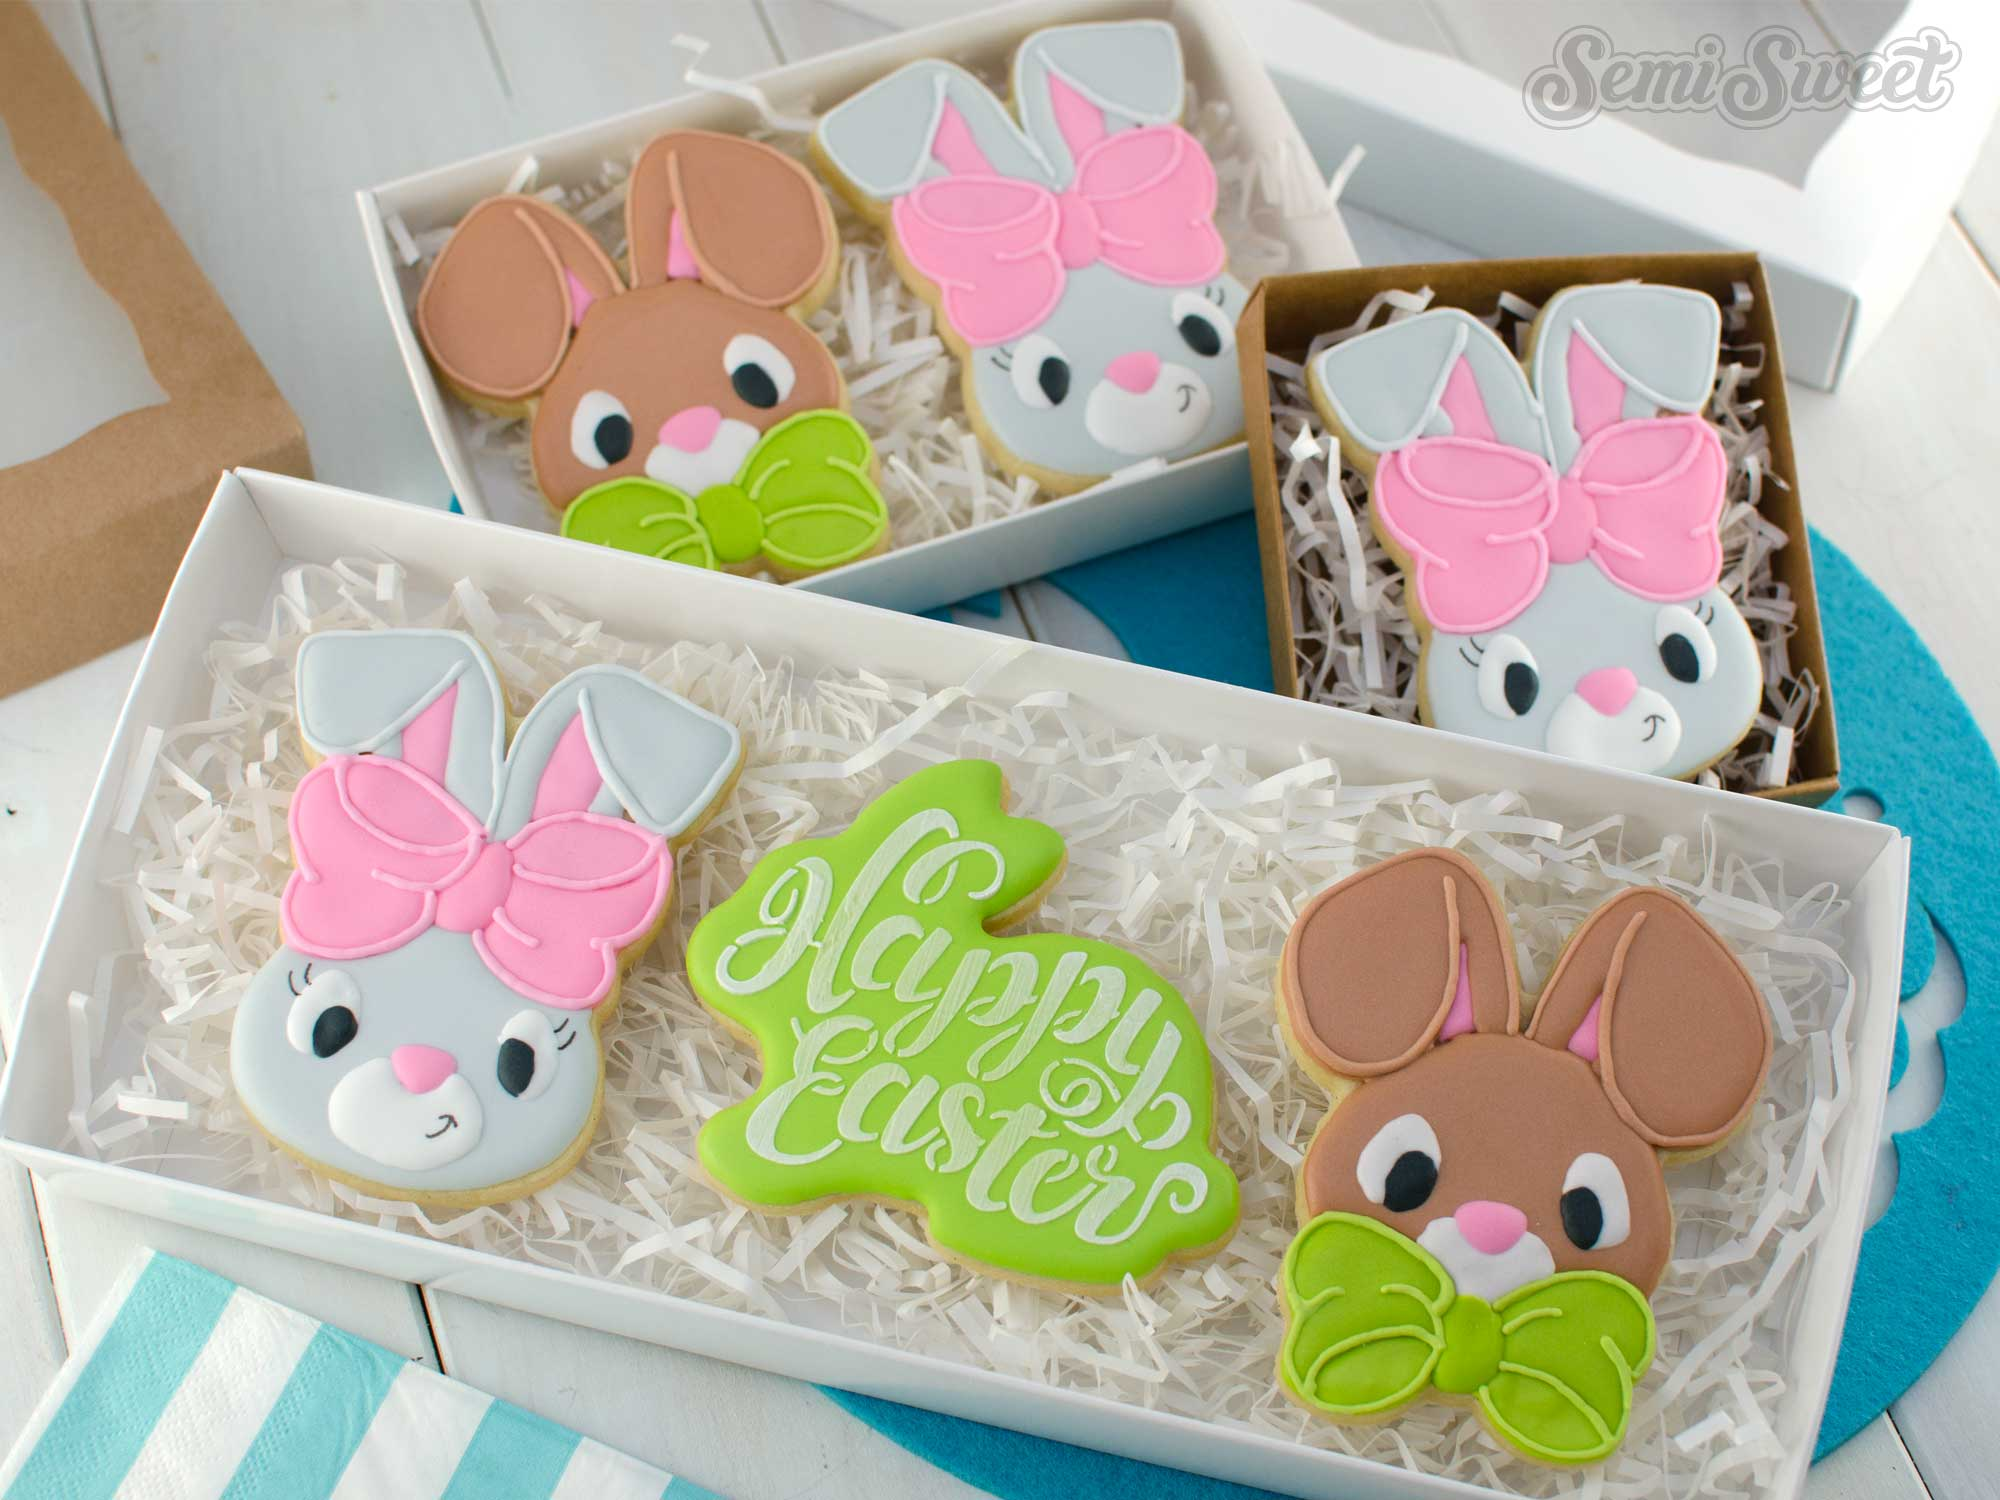 Easter Bunny Cookies with bows by SemiSweetDesigns.com